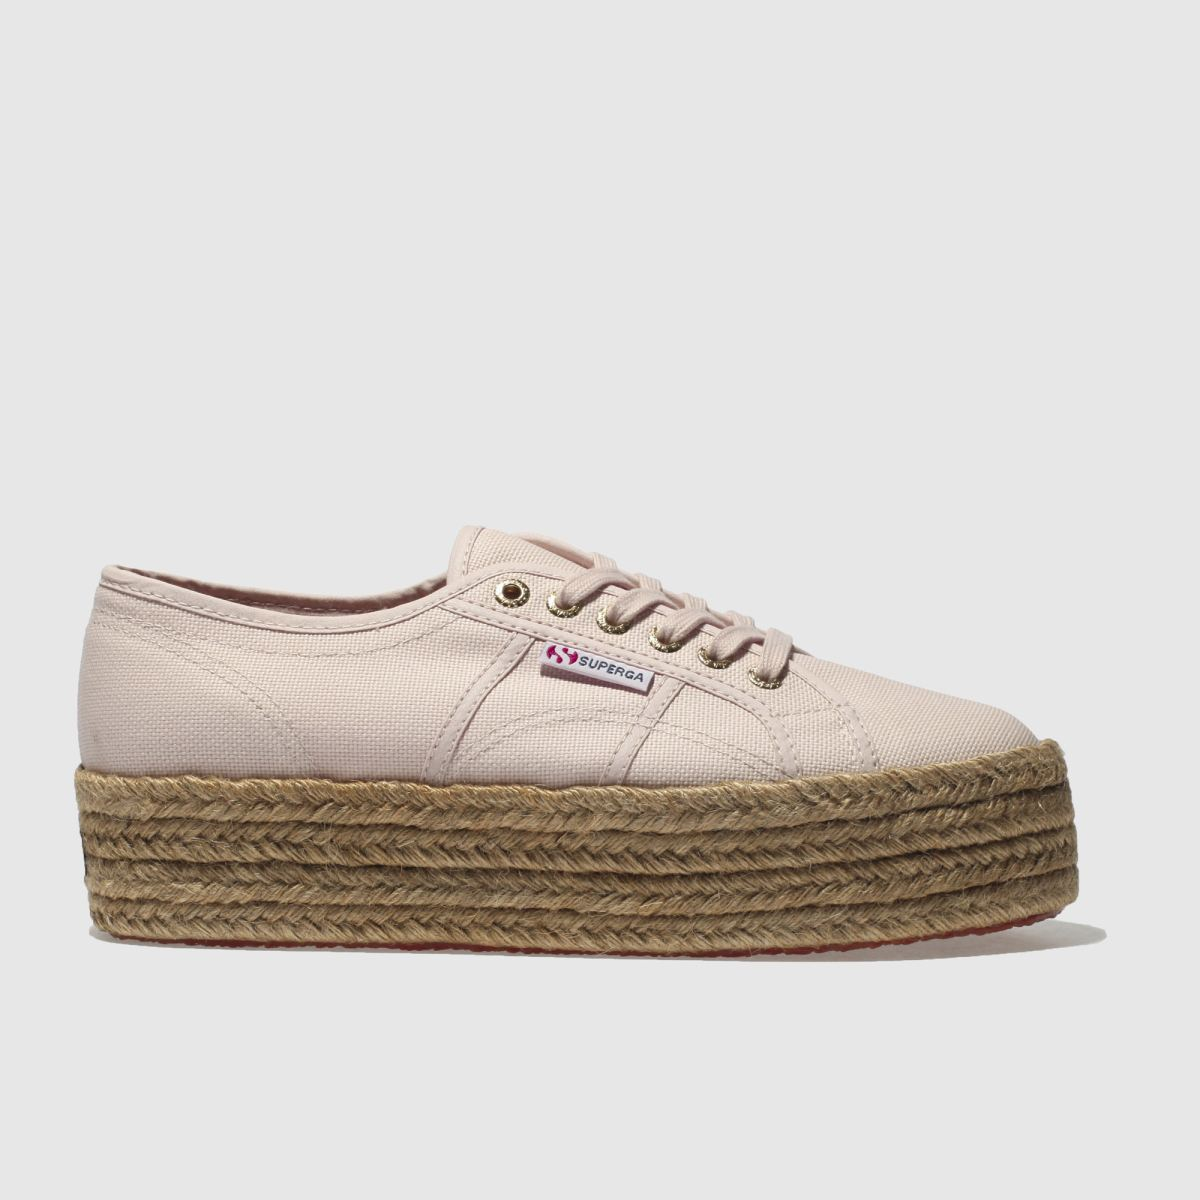 Superga Pale Pink 2790 Cotrope Trainers